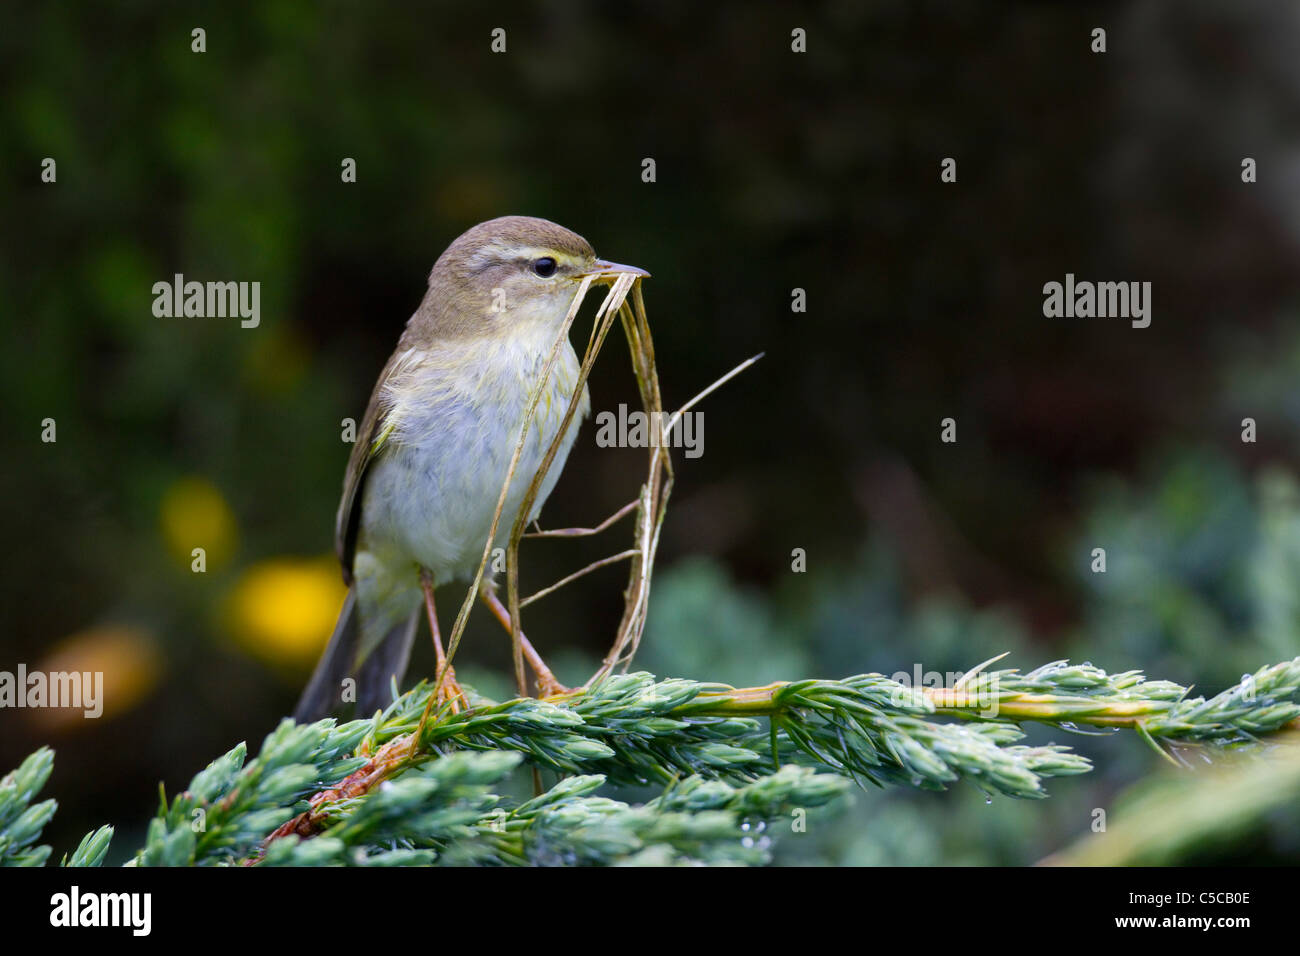 Willow Warbler; Phylloscopus trochilus; Scotland; with nesting material - Stock Image